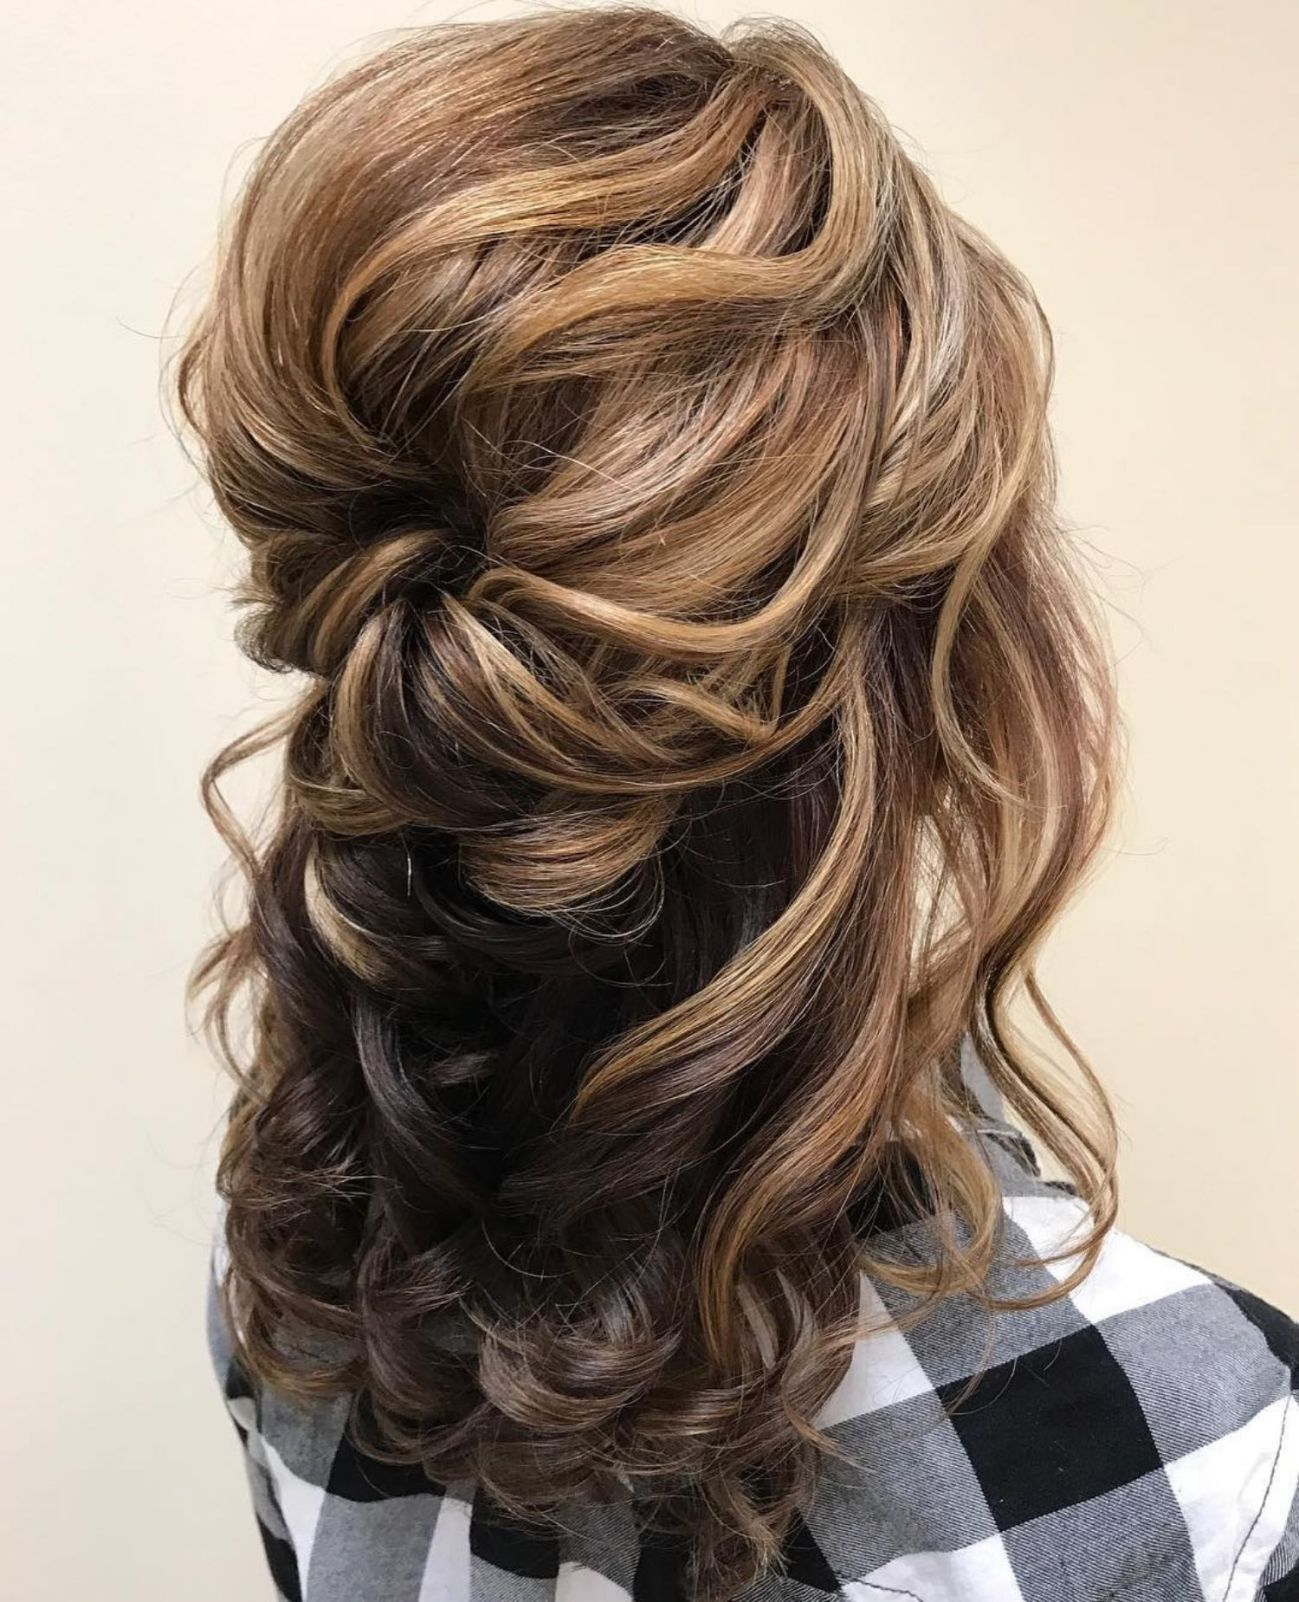 Voluminous Wavy Half Up Hairstyle Mother Of The Groom Hairstyles Hair Styles Mother Of The Bride Hair